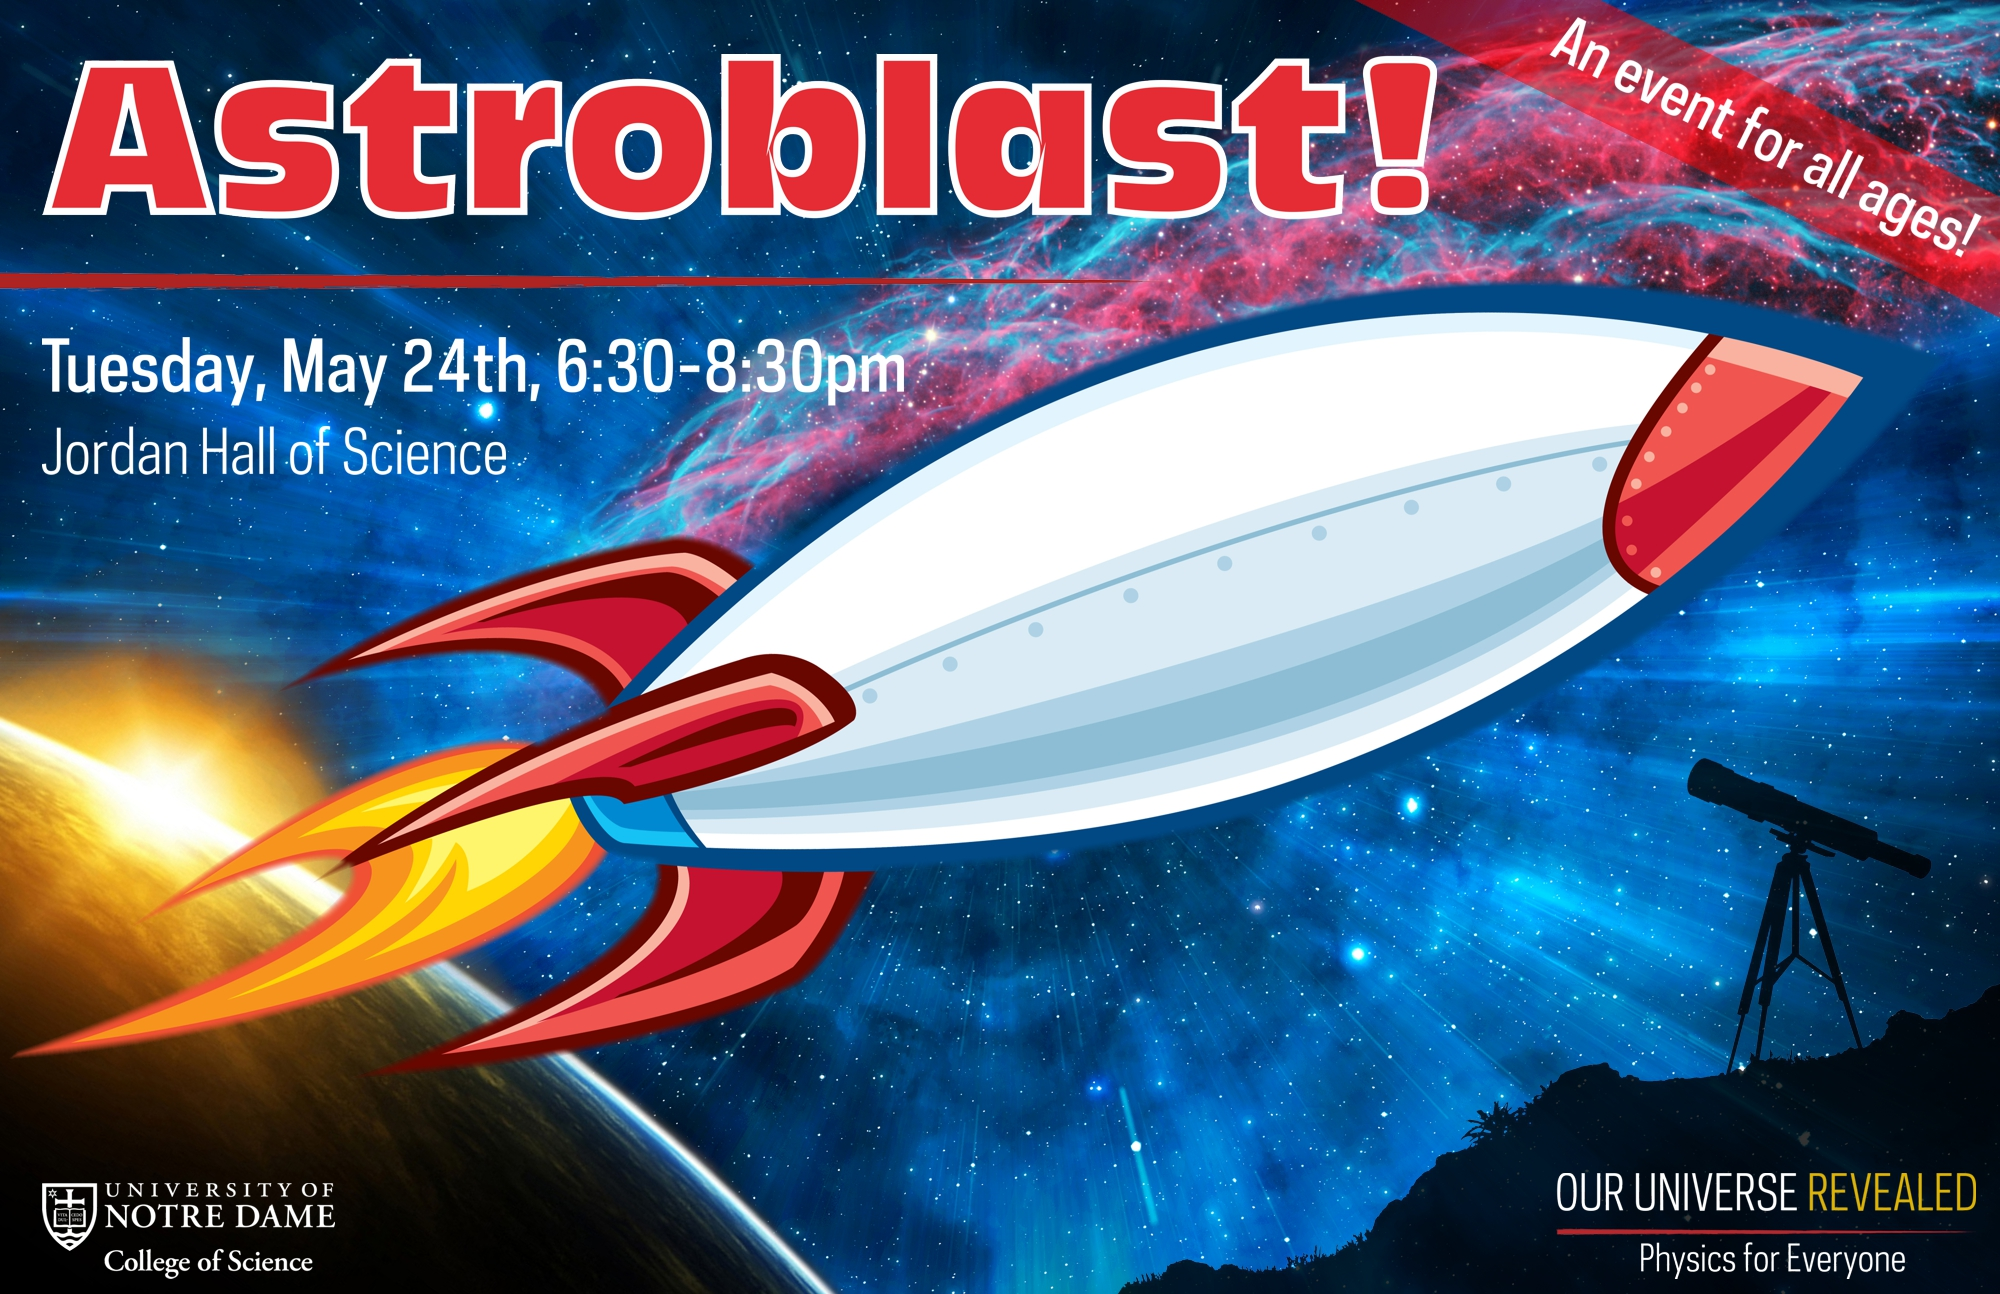 Astroblast! - A free, family friendly event